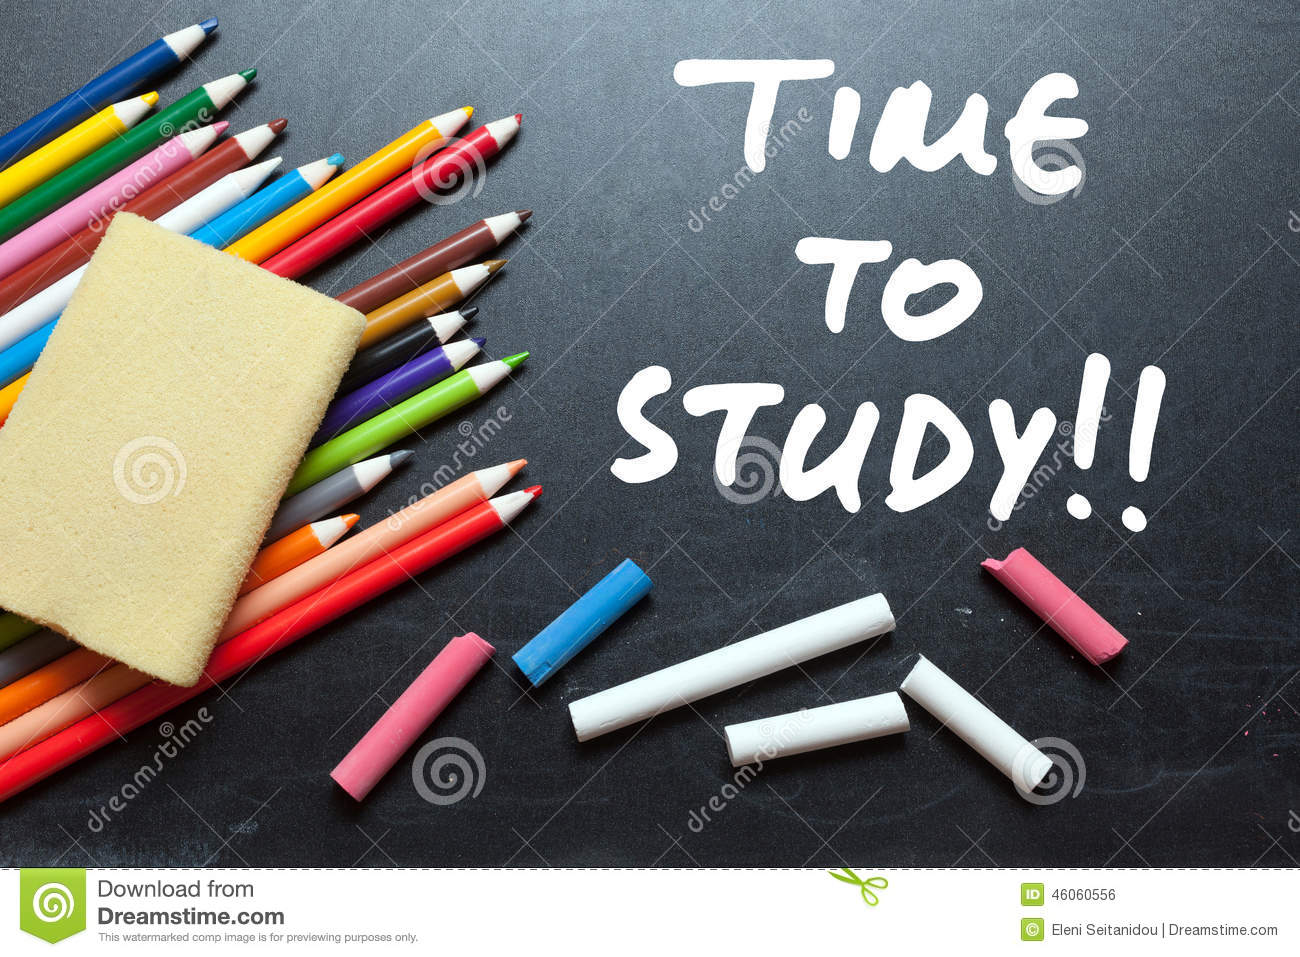 time-to-study-school-tools-around-blackboard-background-46060556.jpg